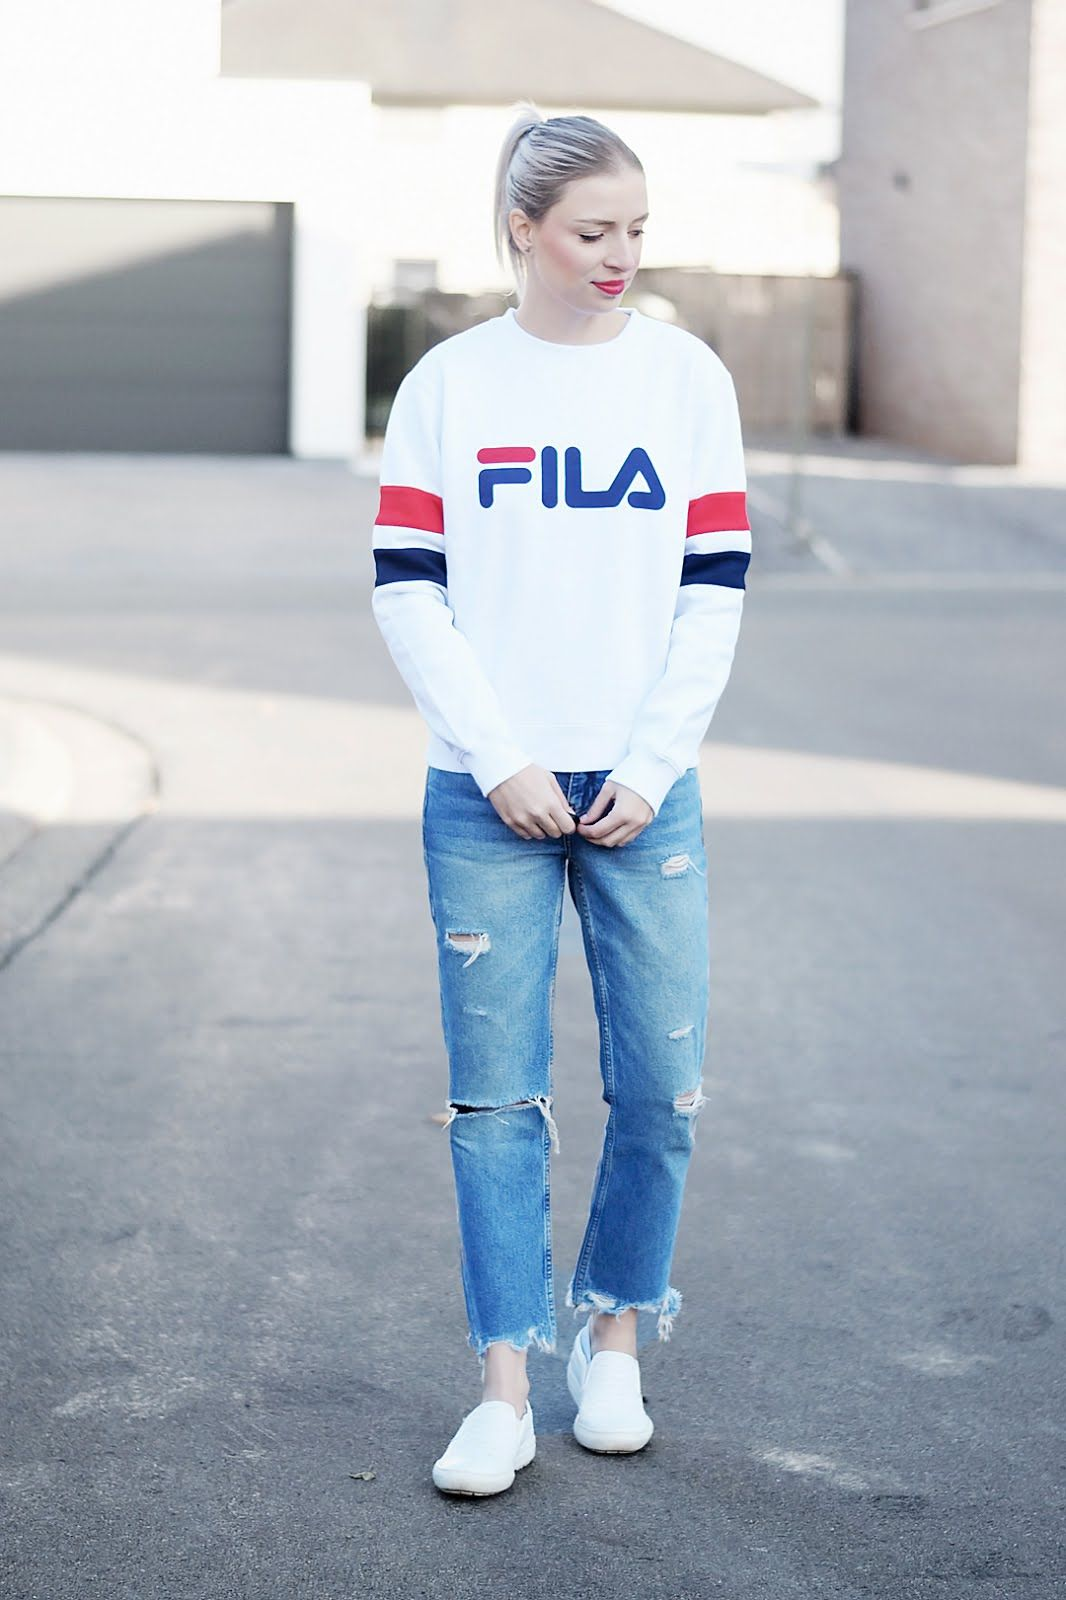 how to wear fila clothing  turnitinsideout  01 turn